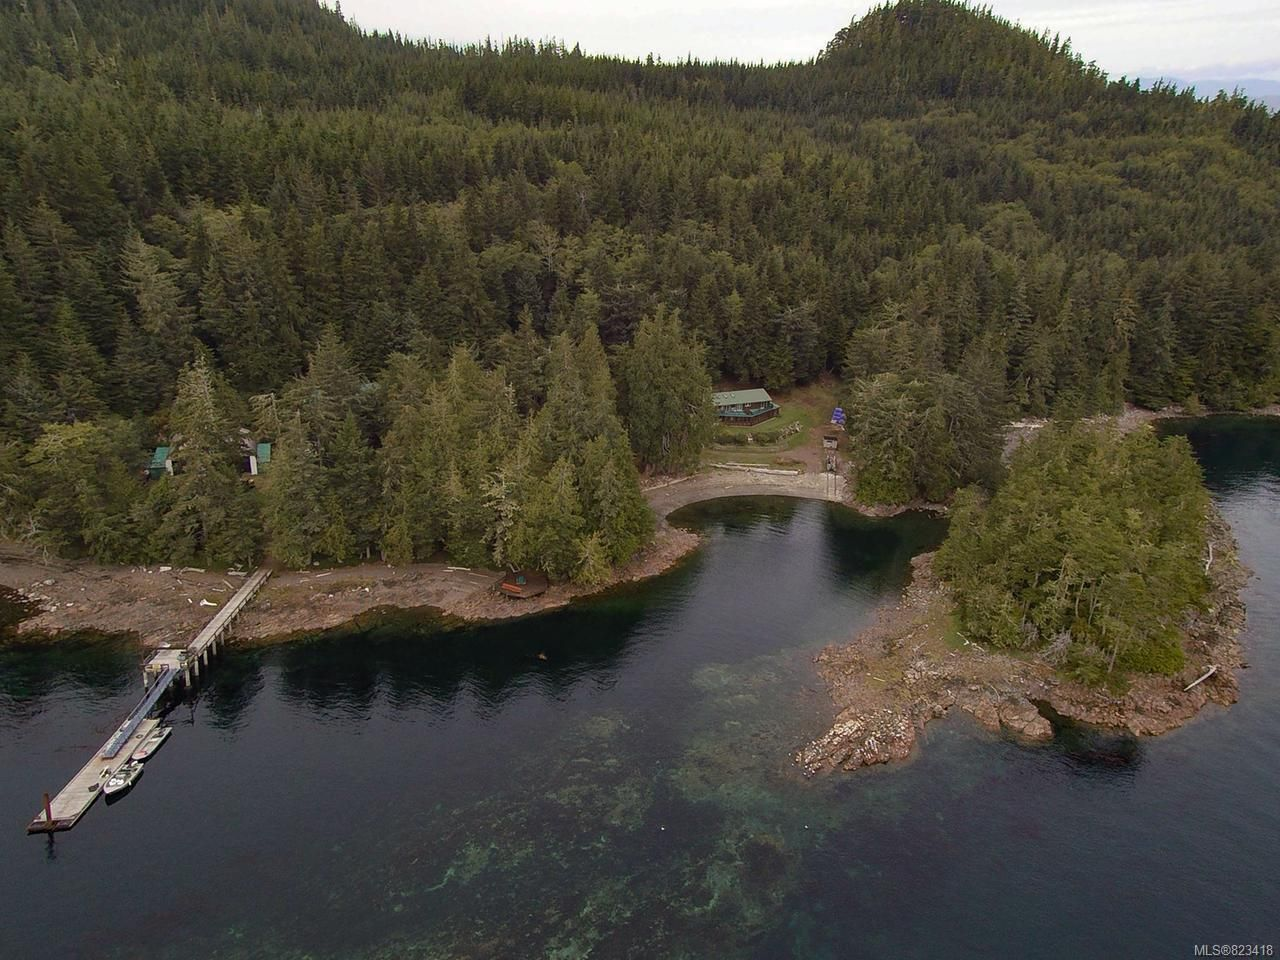 Main Photo: 100 West Pass in SWANSON ISLAND: Isl Small Islands (Campbell River Area) House for sale (Islands)  : MLS®# 823418